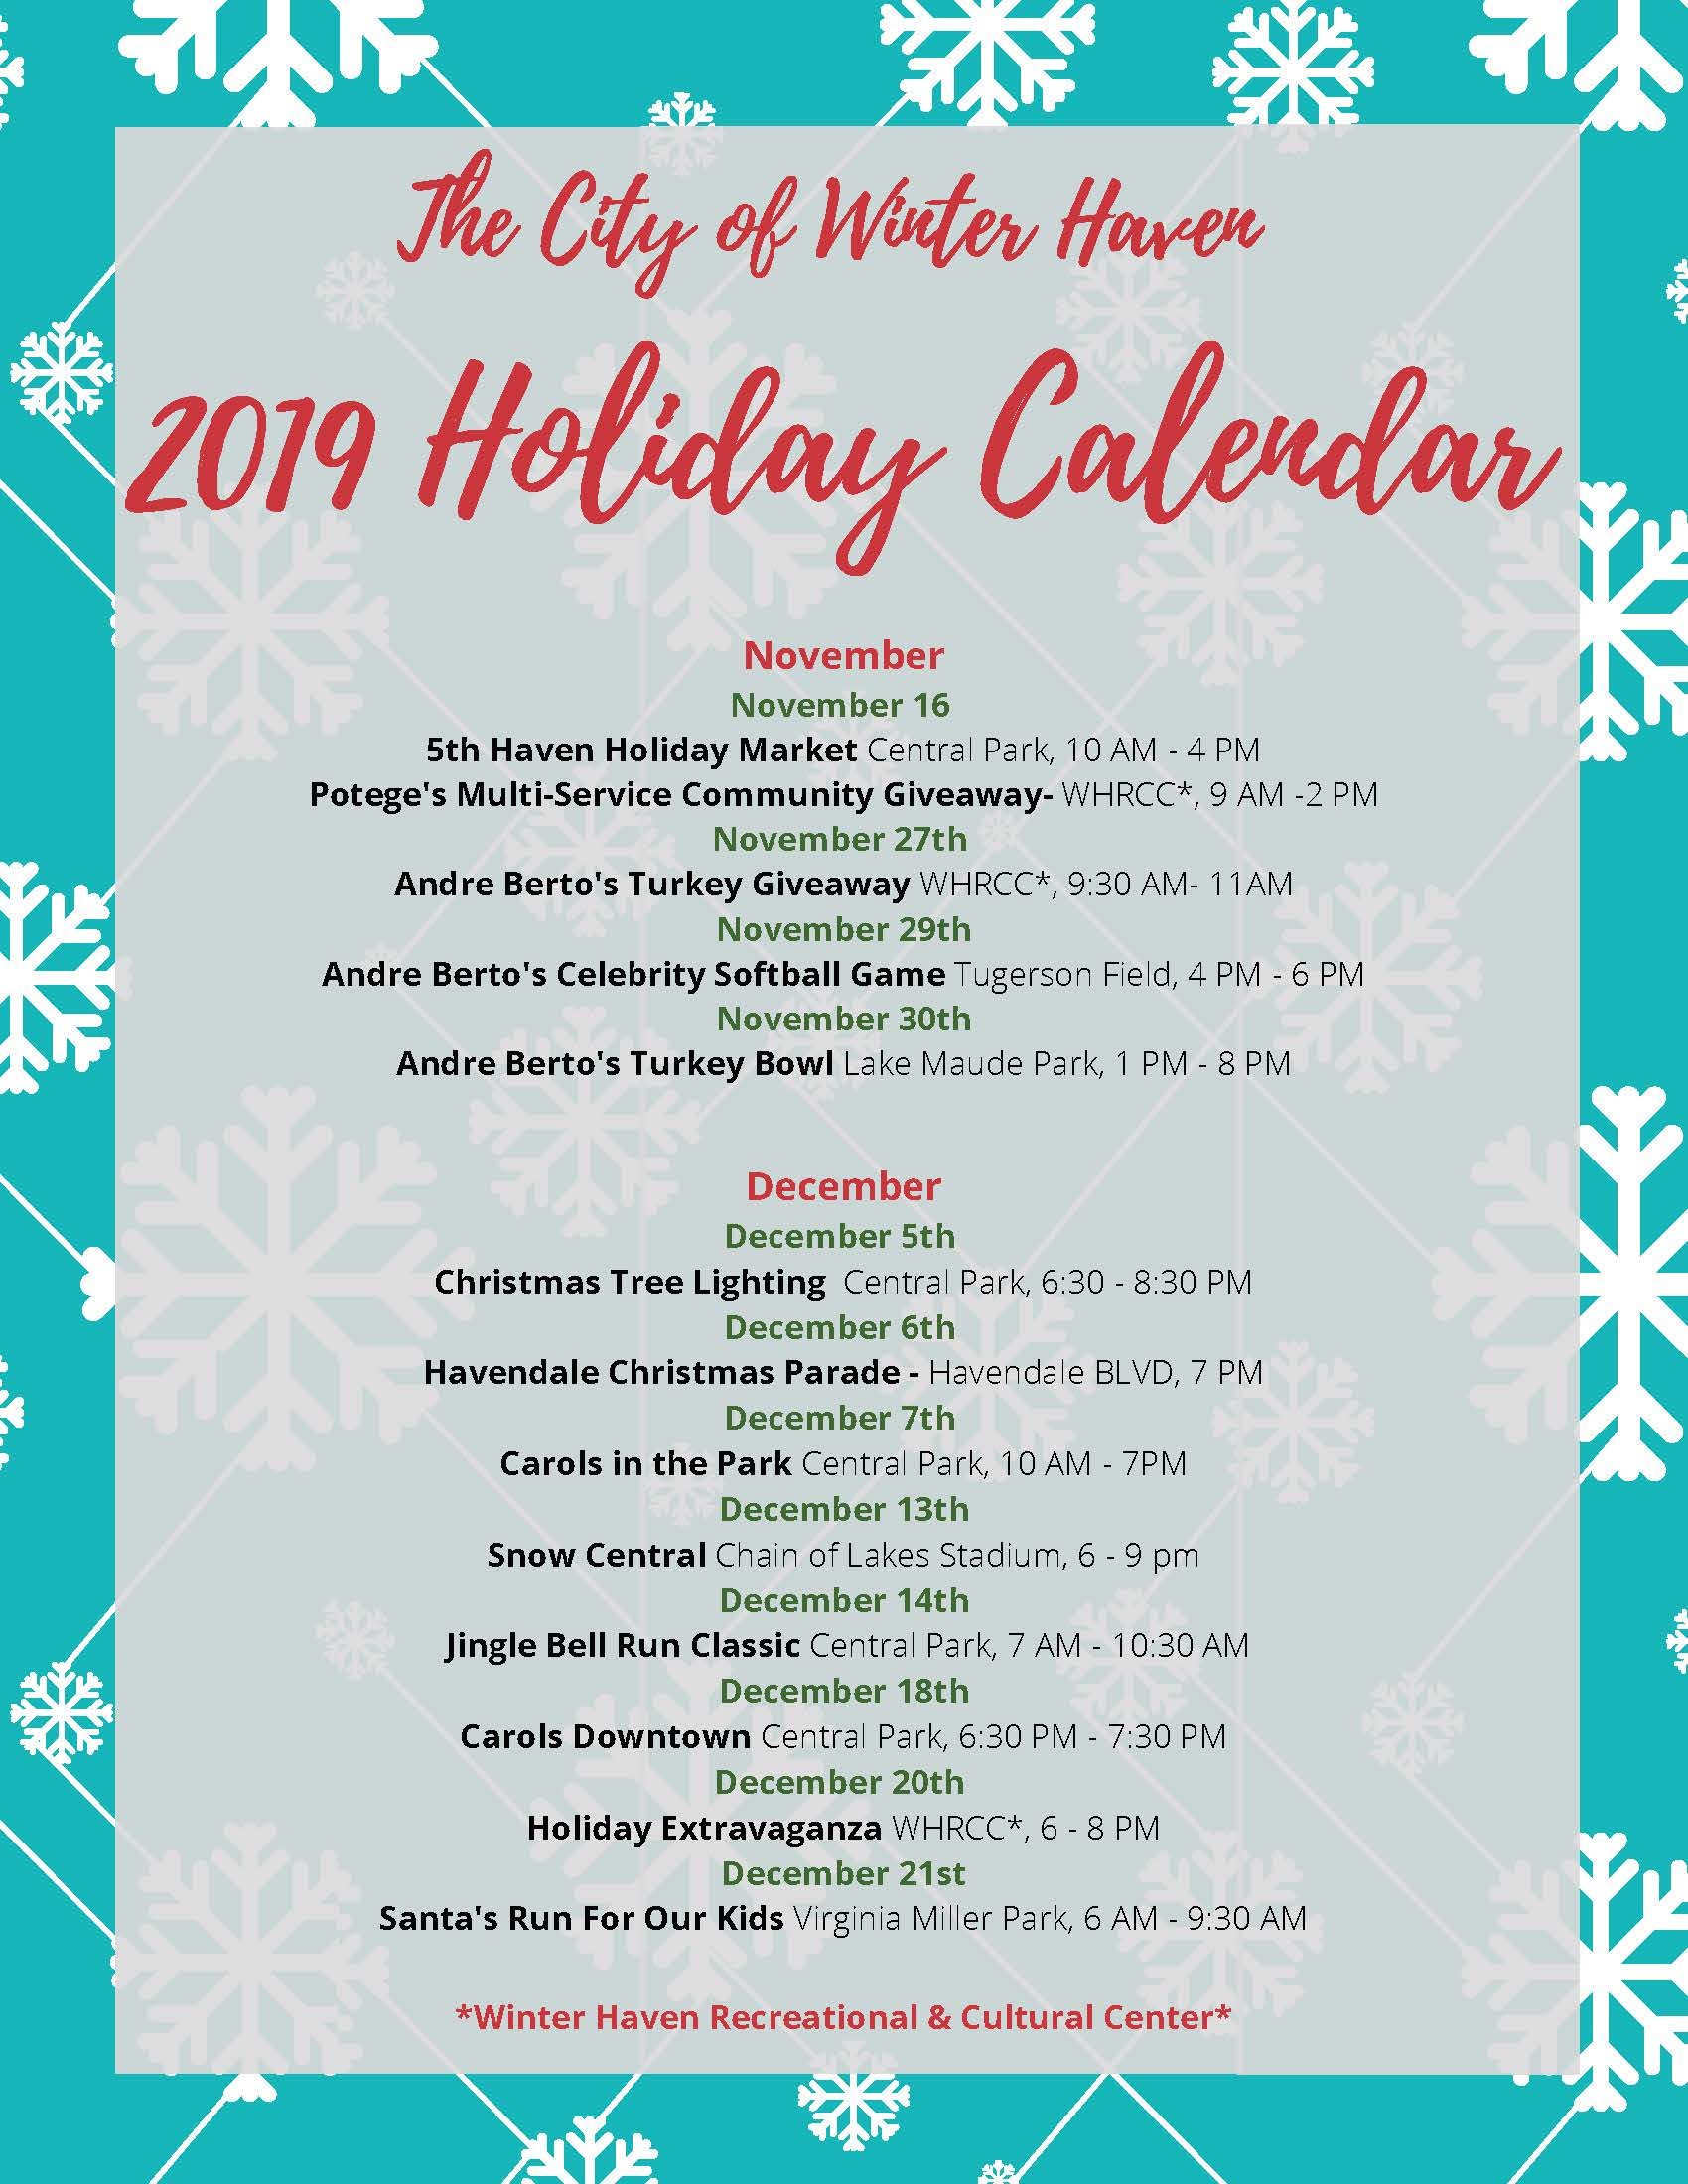 city of winter haven holiday calender 2019